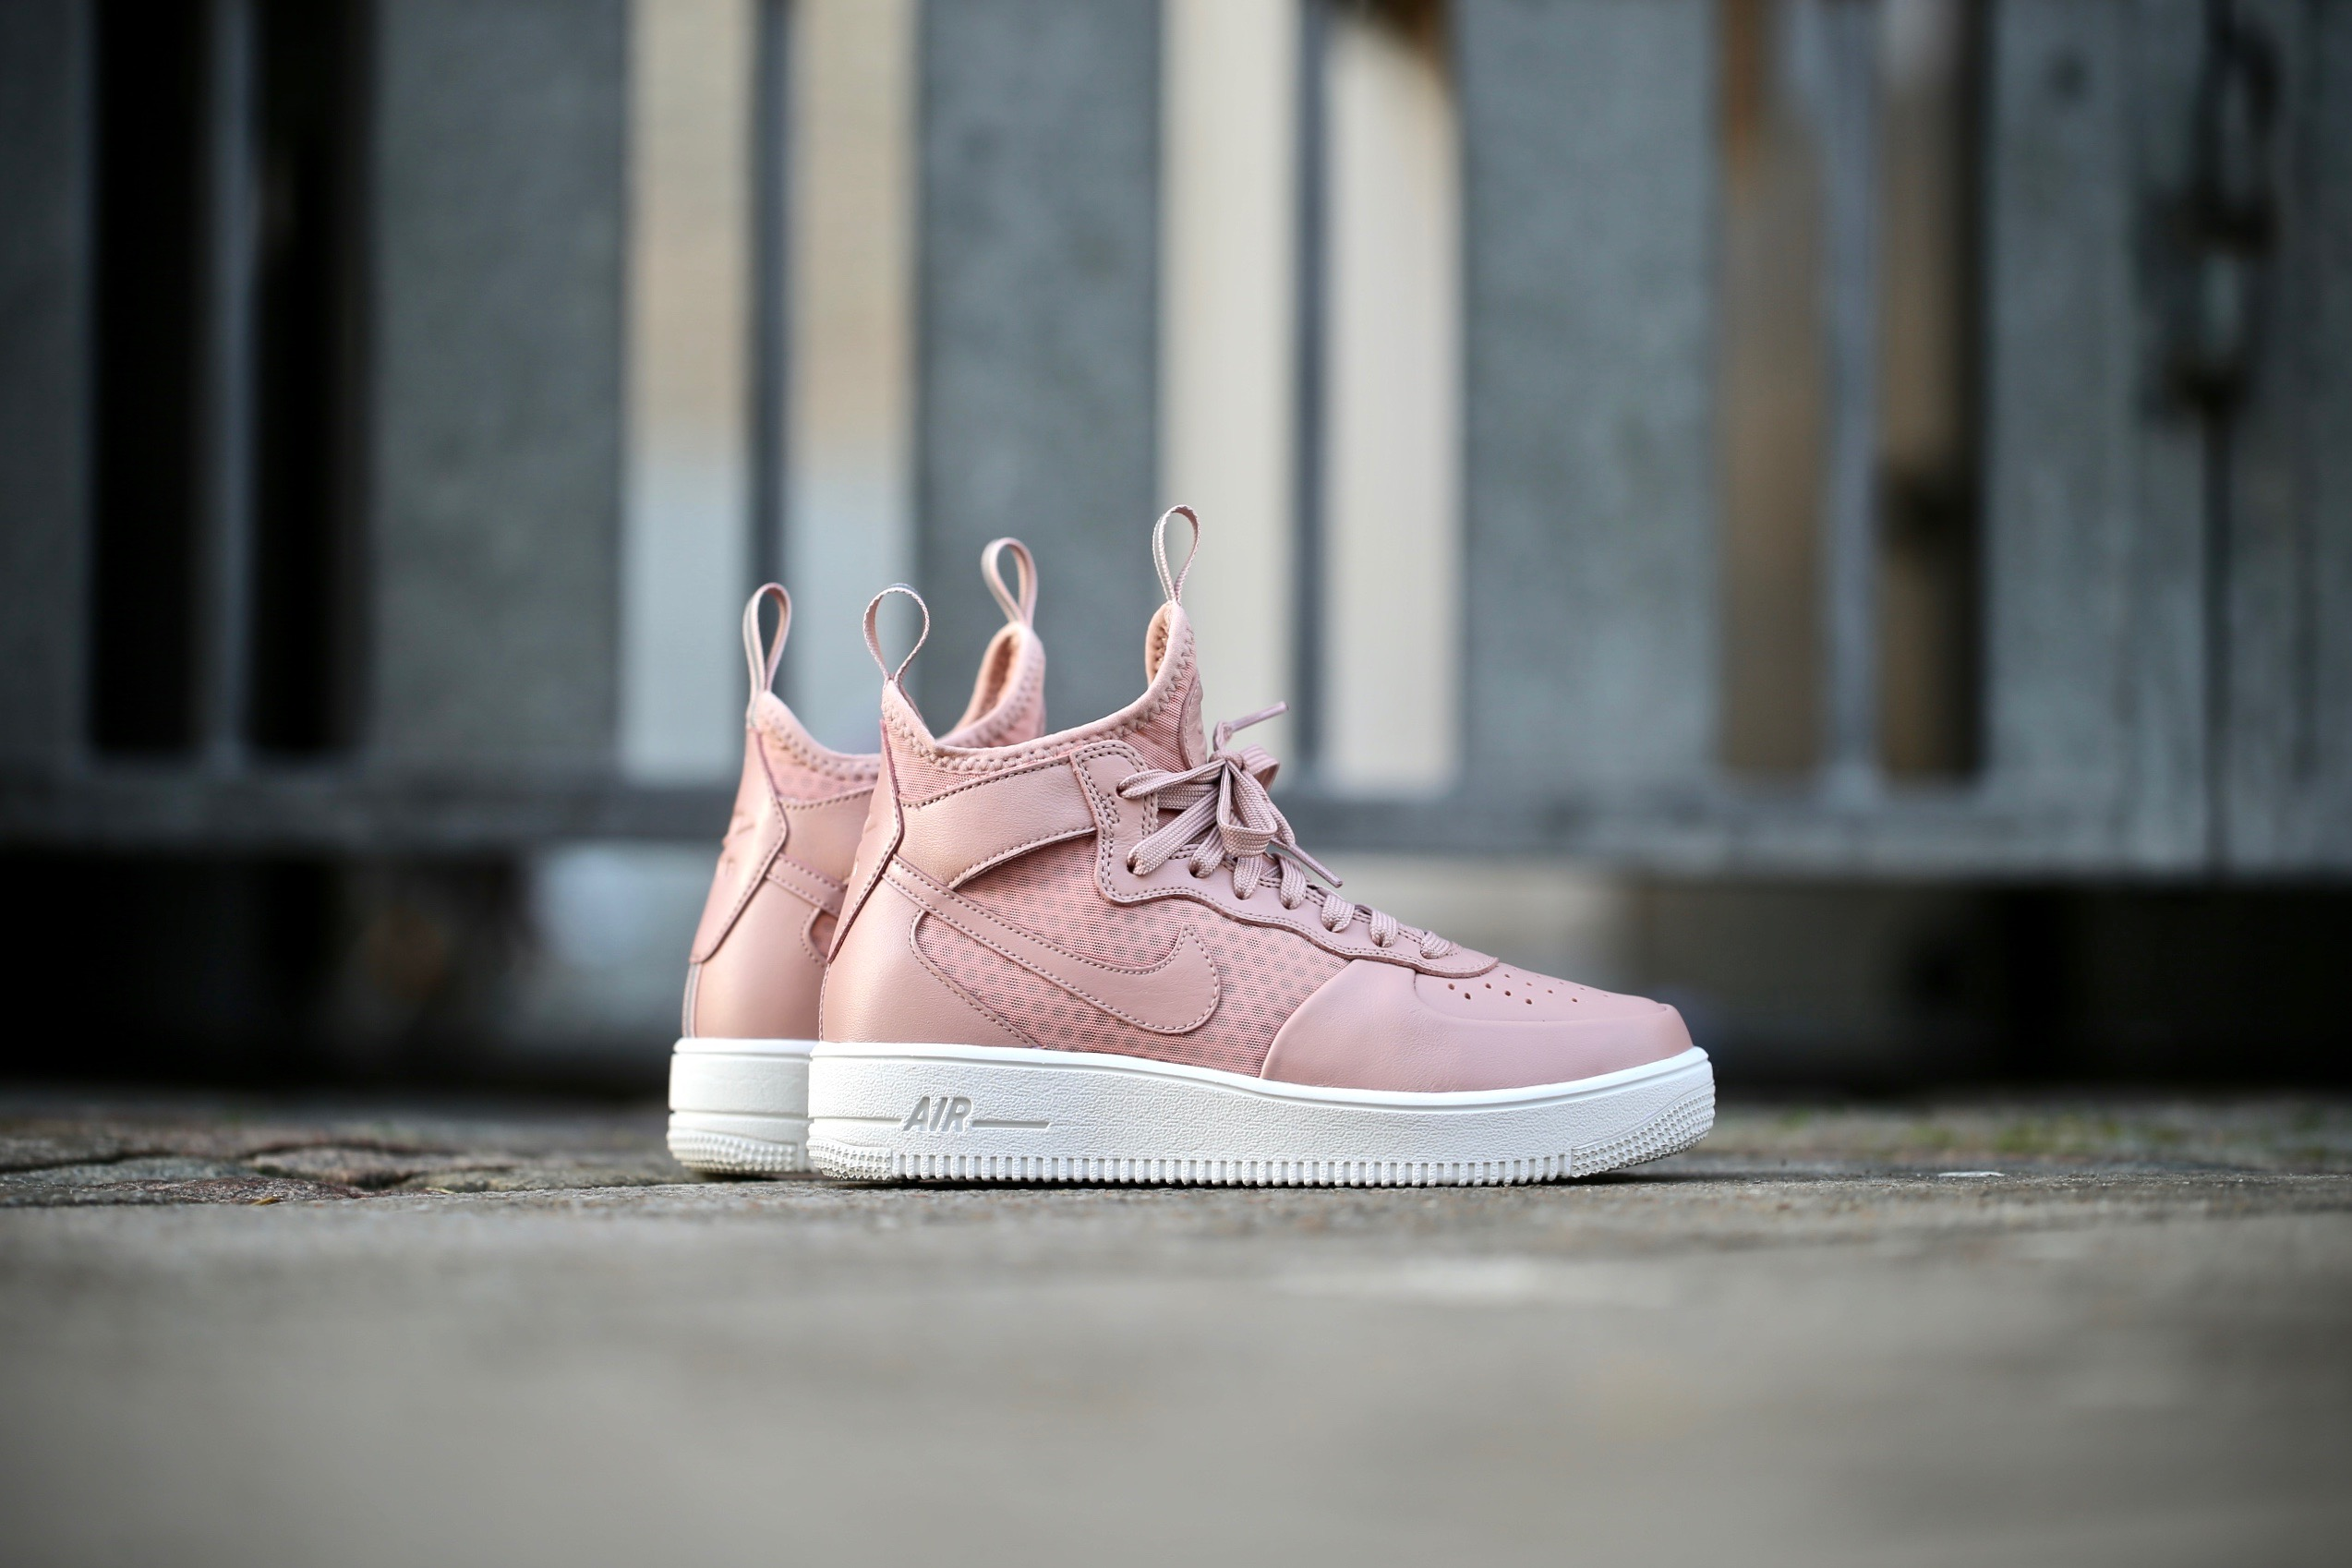 Zjednoczone Królestwo aliexpress Najnowsza Nike Wmns Air Force 1 UltraForce Mid - Particle Pink / Particle Pink